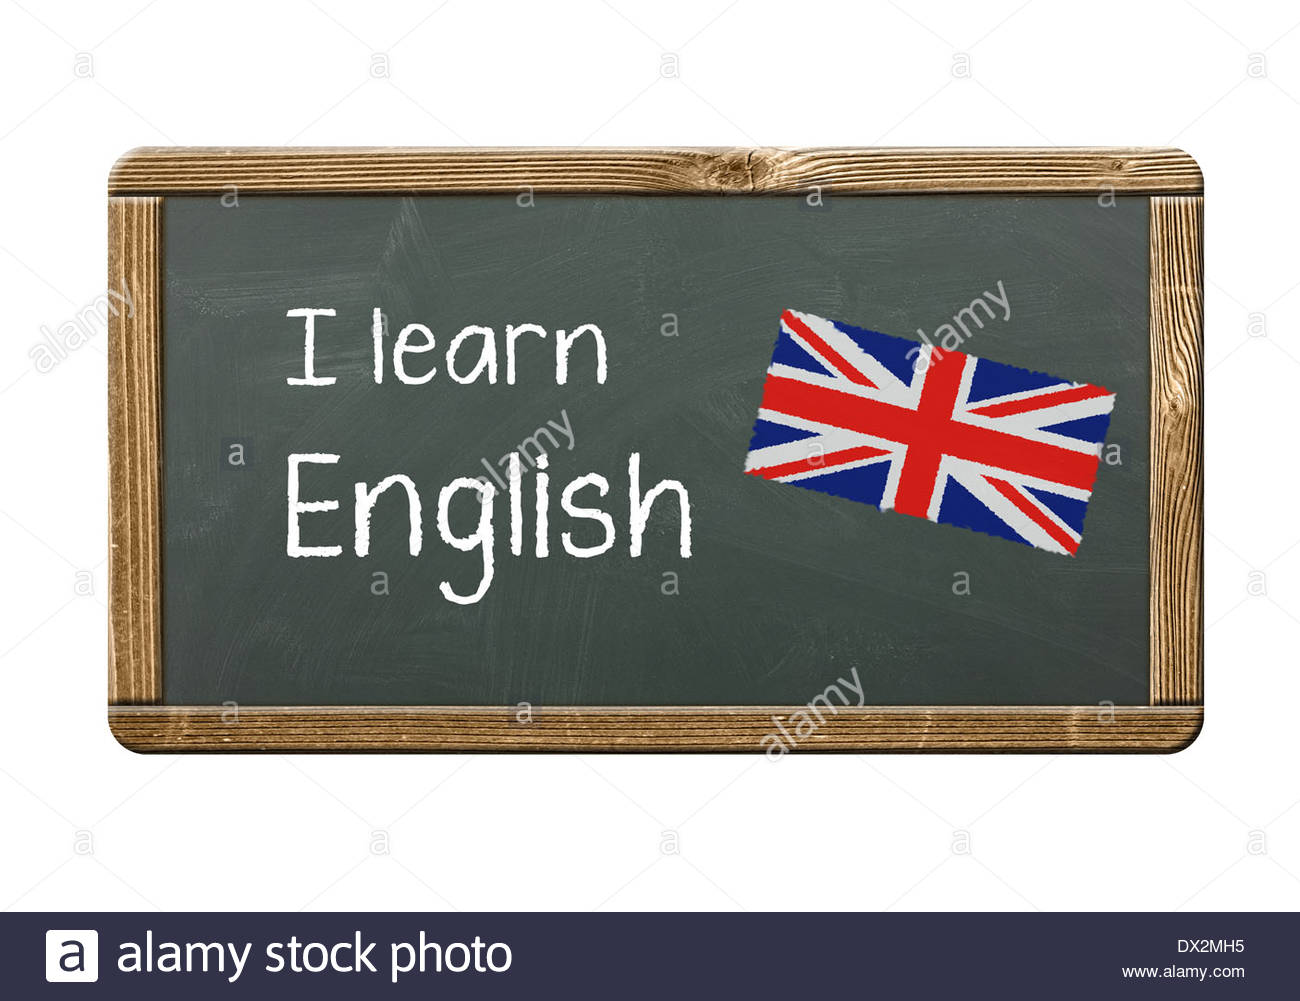 I Learn English Stock Photos & I Learn English Stock Images